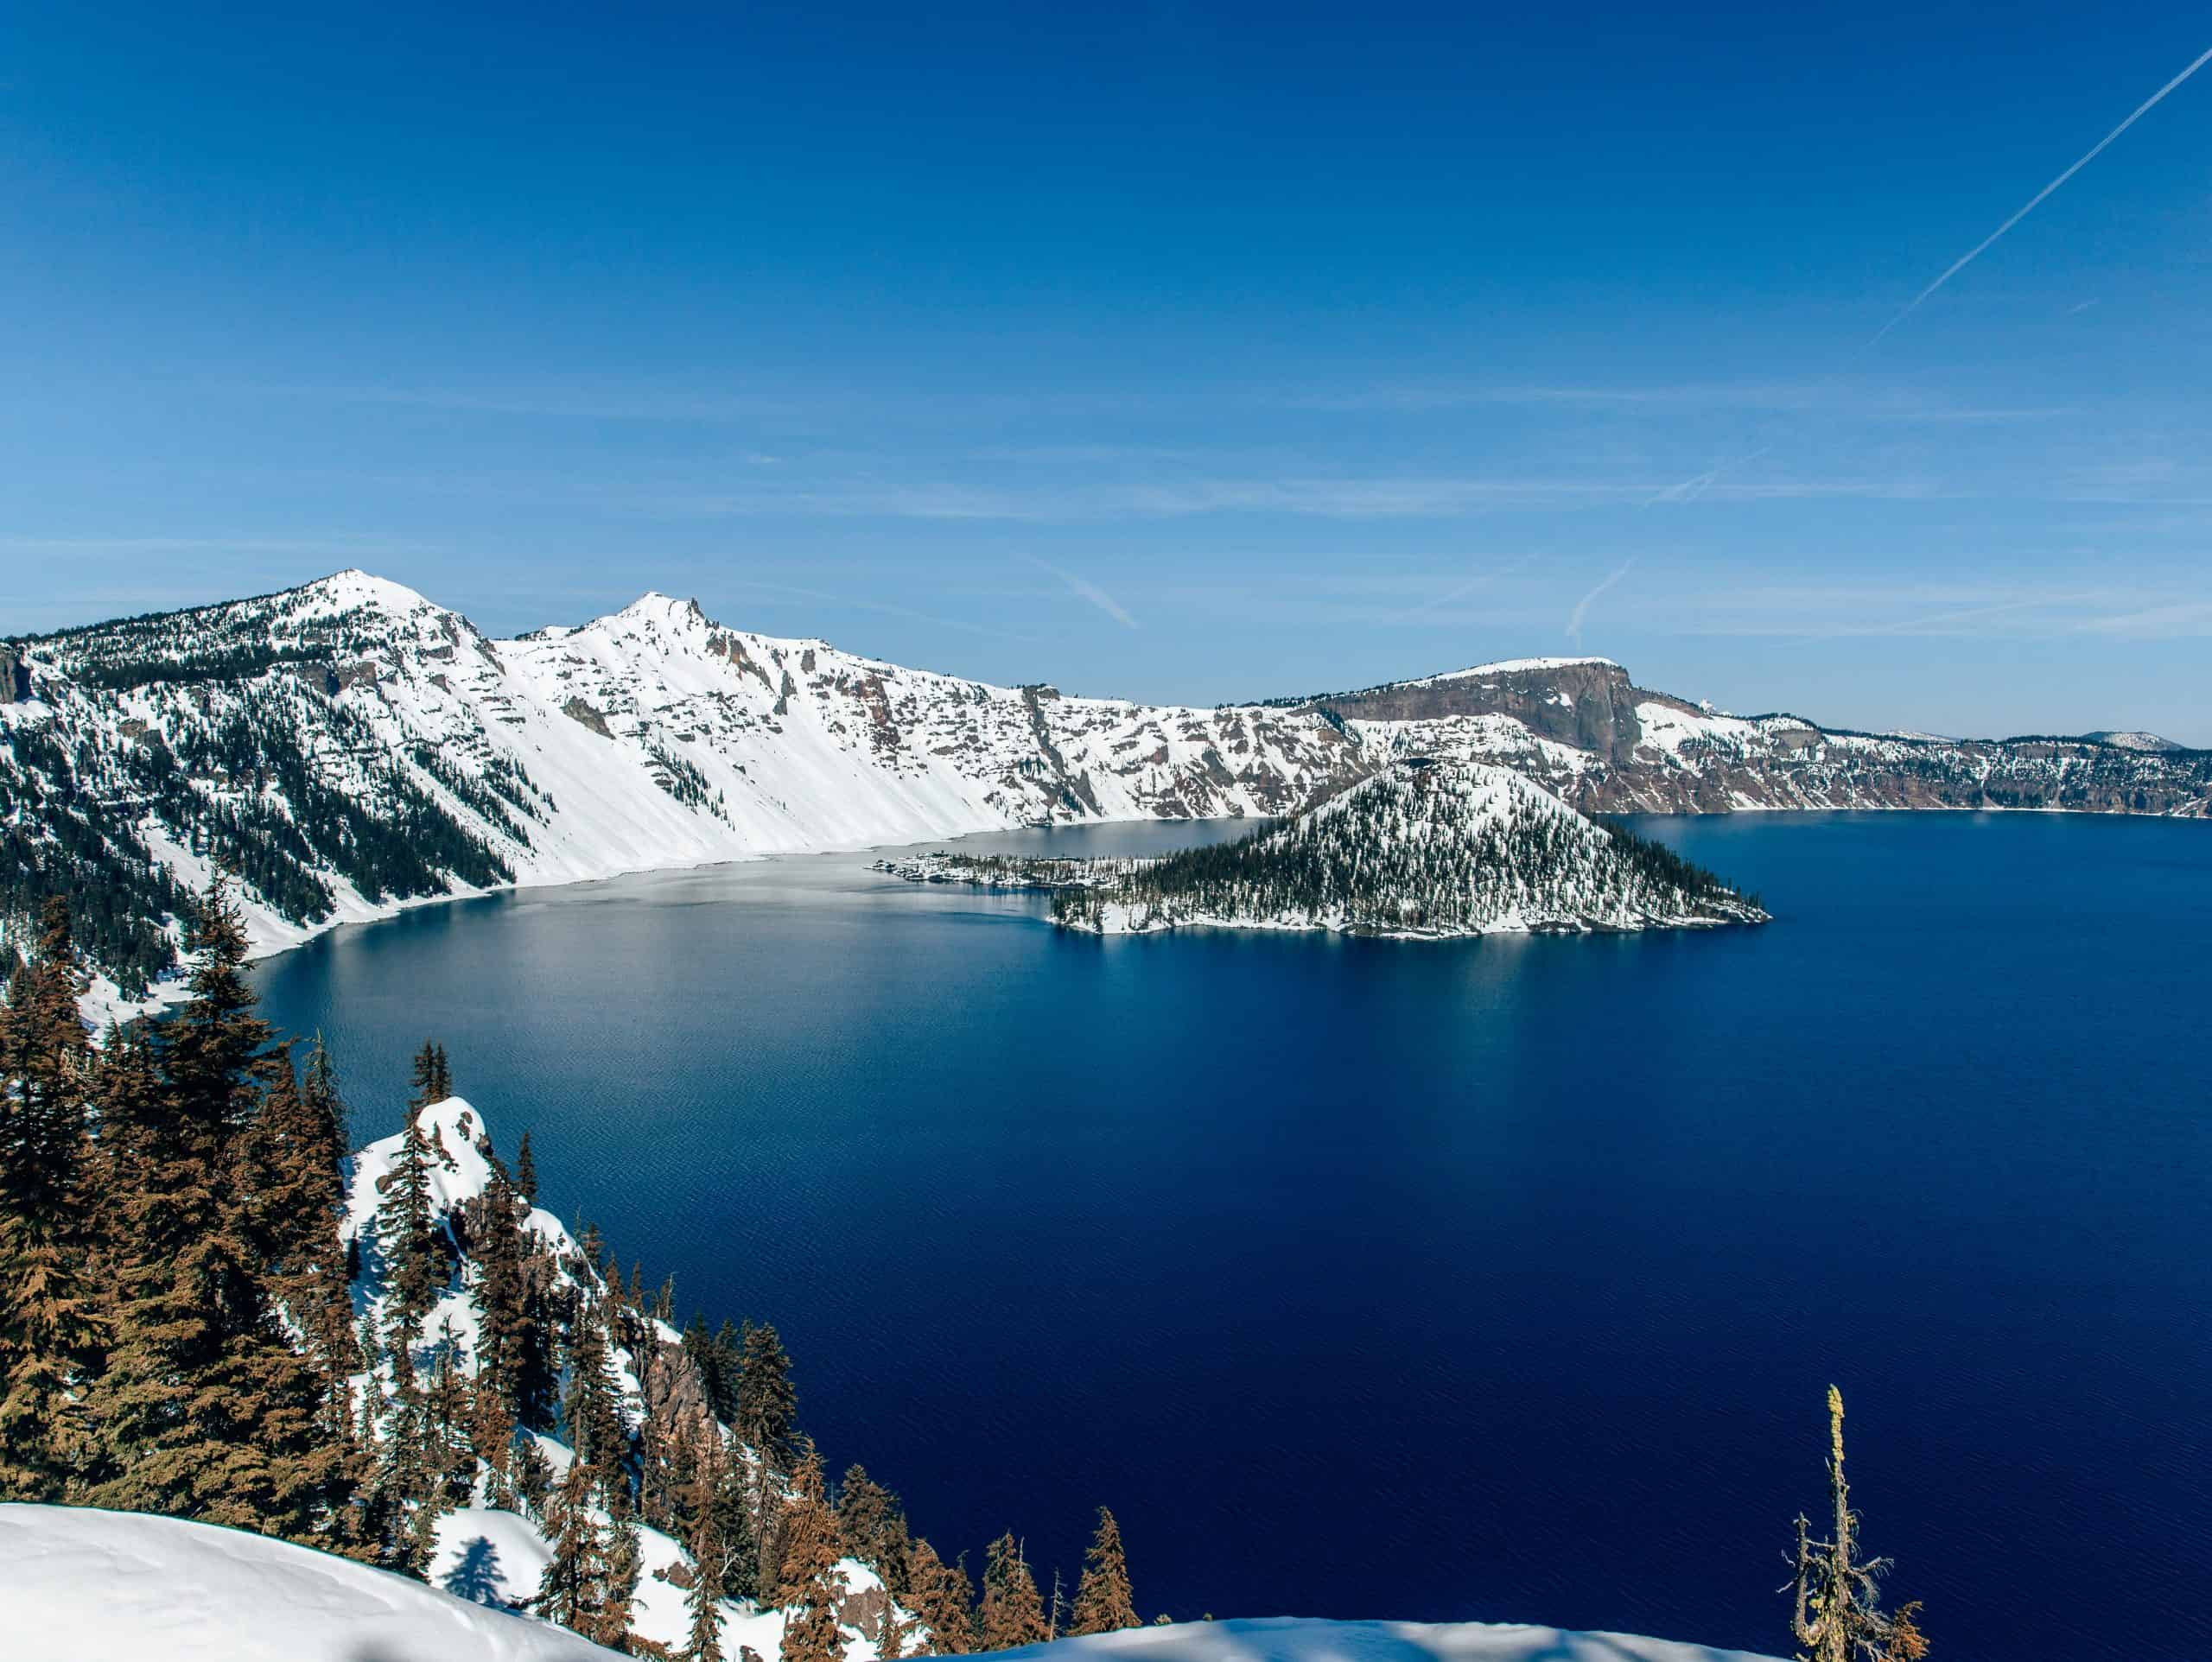 Crater Lake - The Next Trip